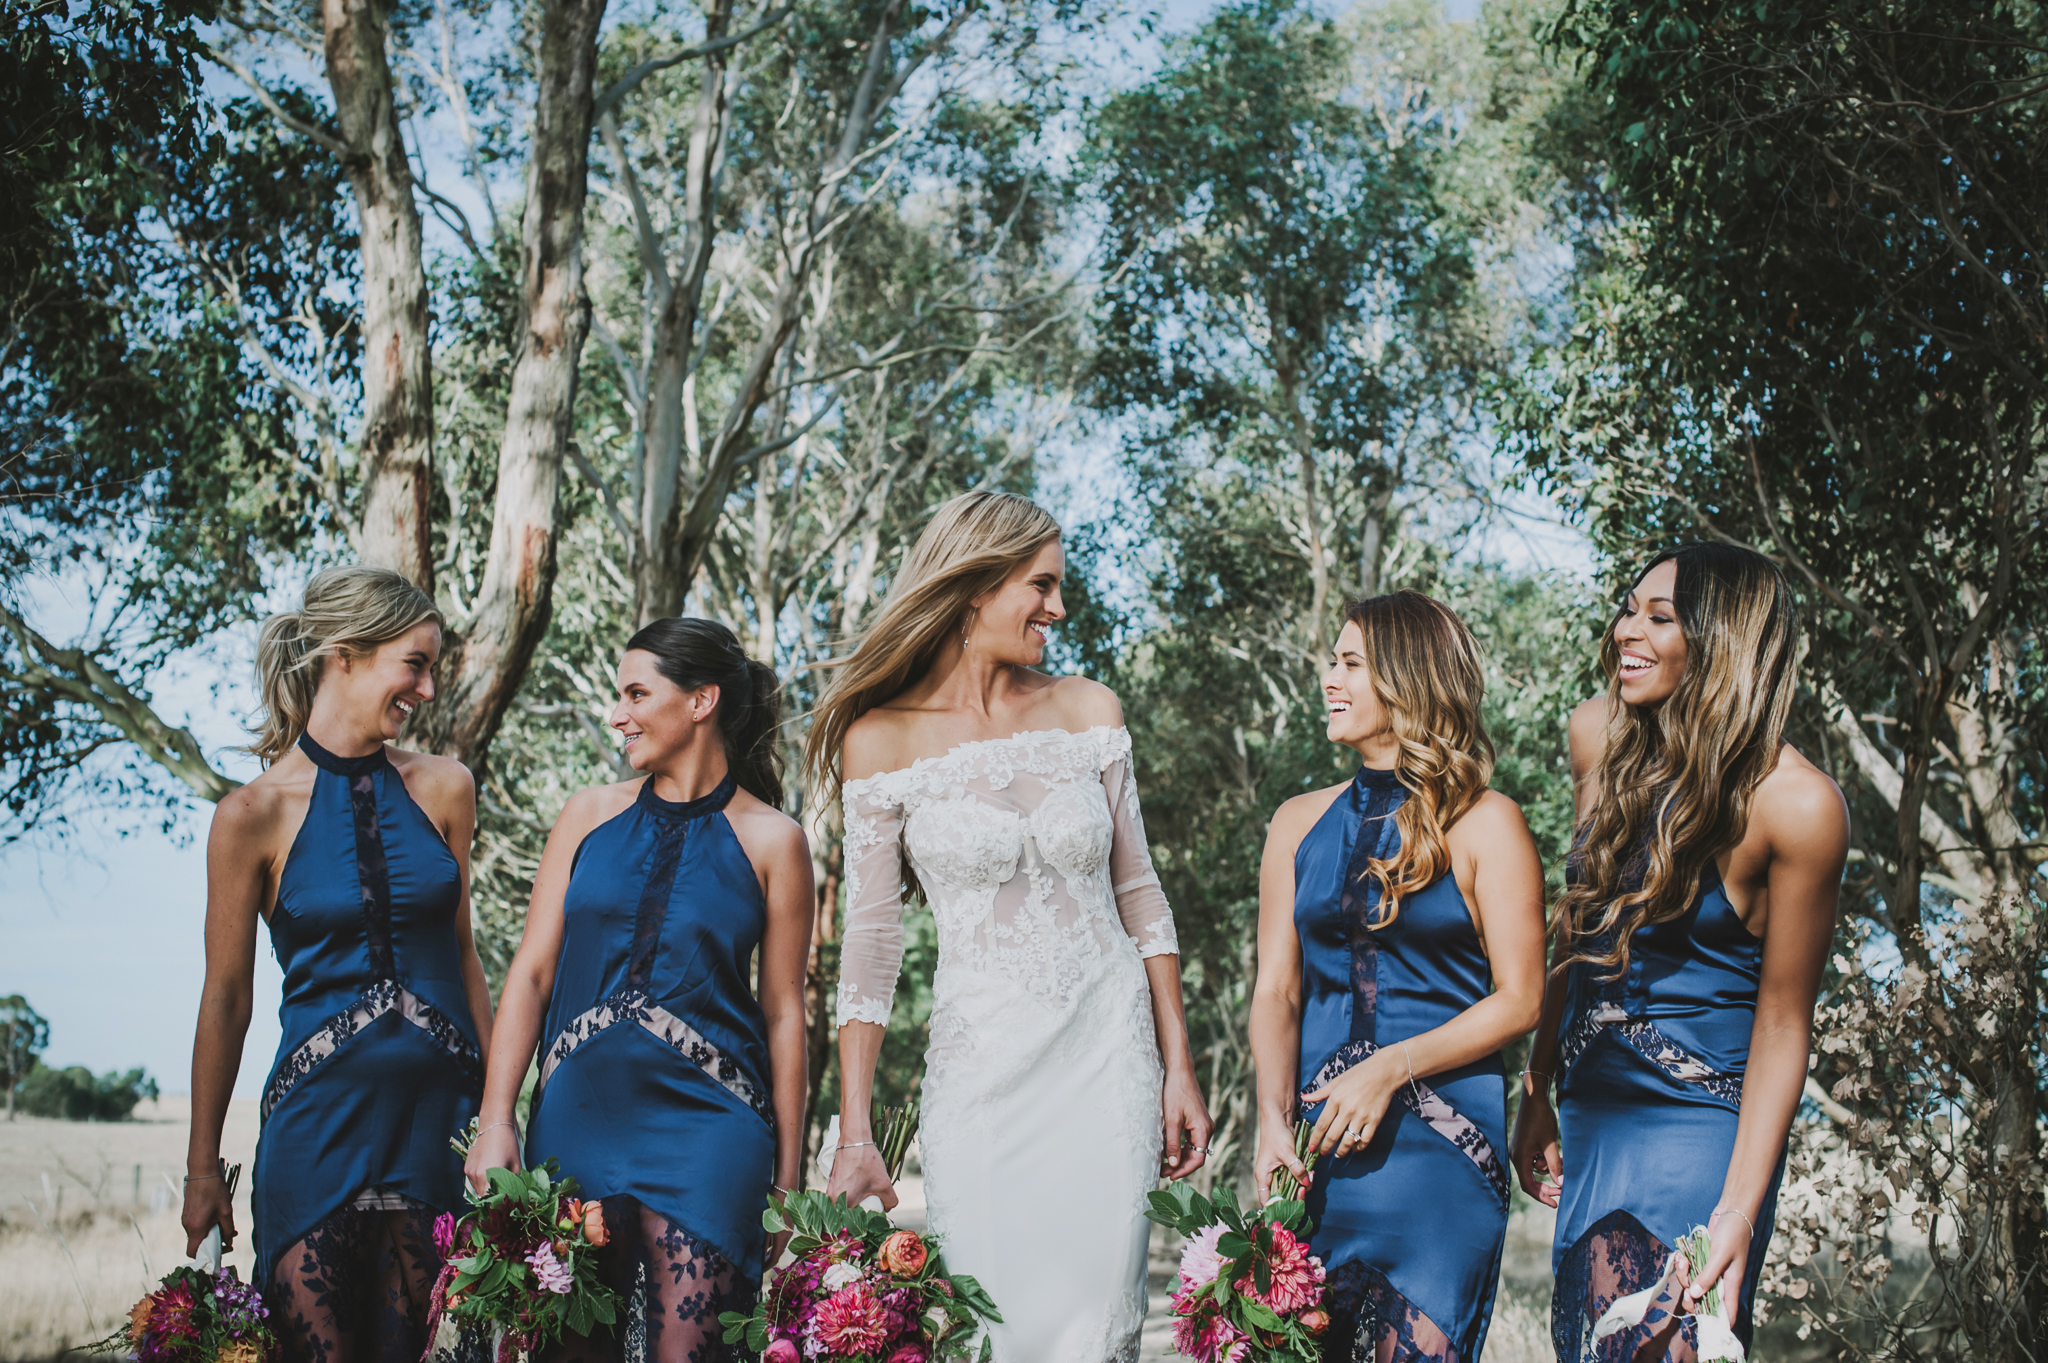 WEB Shae + Mitch Bush Festival Wedding She Takes Pictures He Makes Films Sooti Events and Styling-74.jpg